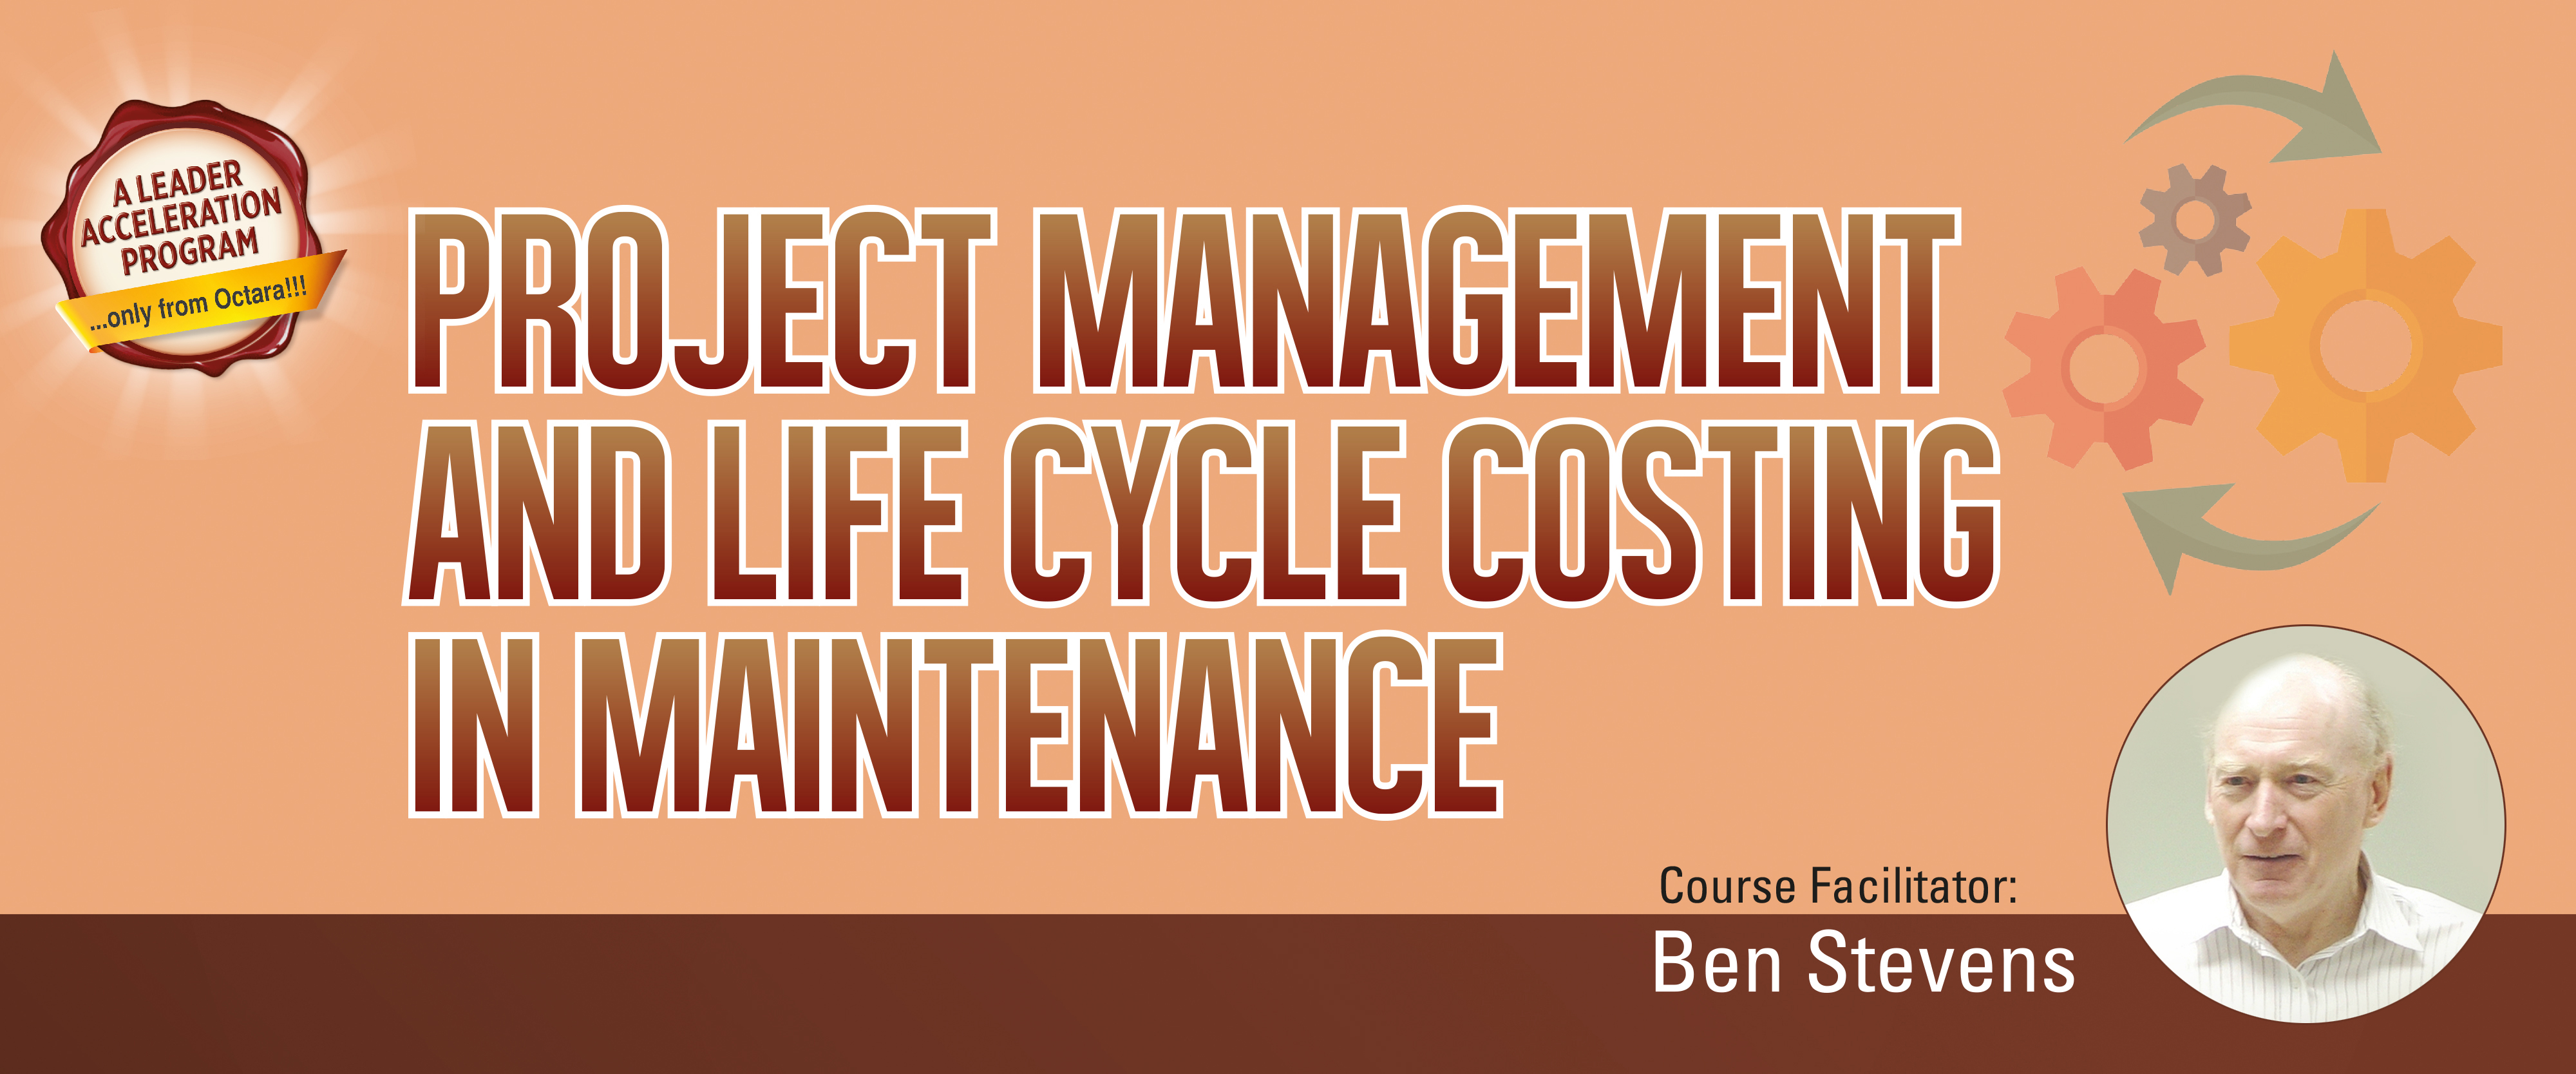 PROJECT-MANAGEMENT-LIFECYLE-COSTING